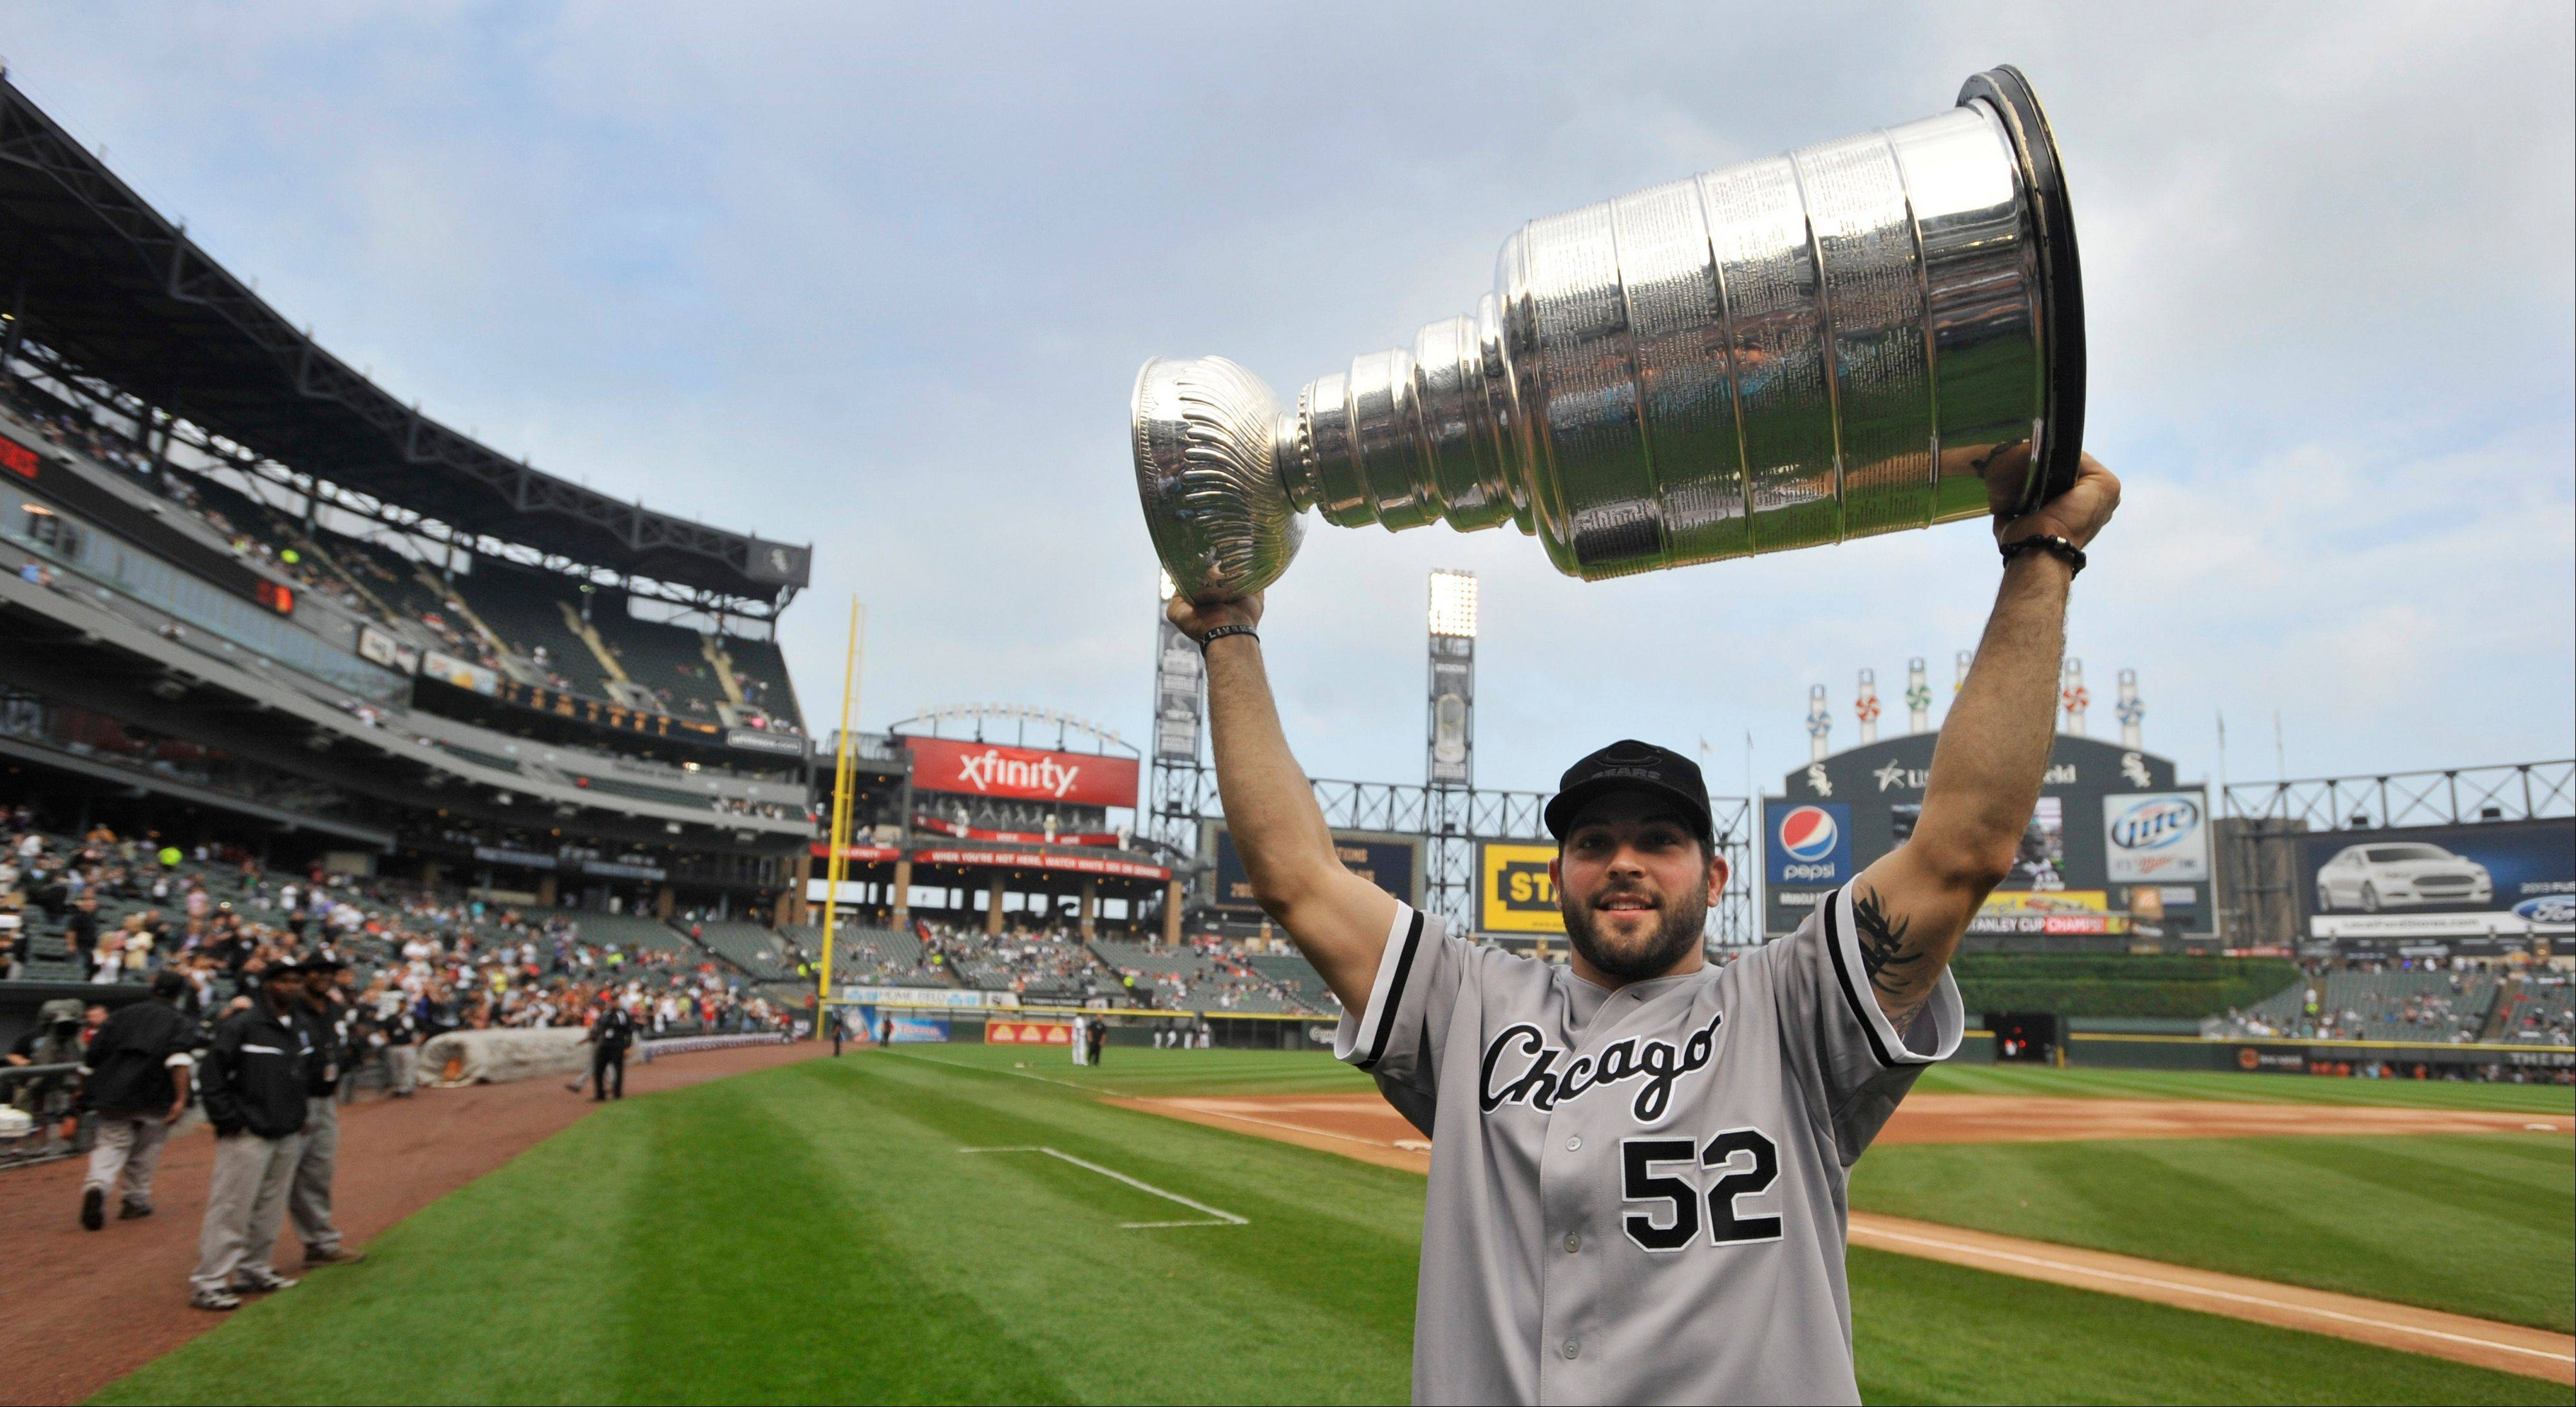 Blackhawks player Brandon Bollig carries the Stanley Cup after throwing out a ceremonial first pitch before the White Sox-Orioles game at U.S. Cellular Field in Chicago.